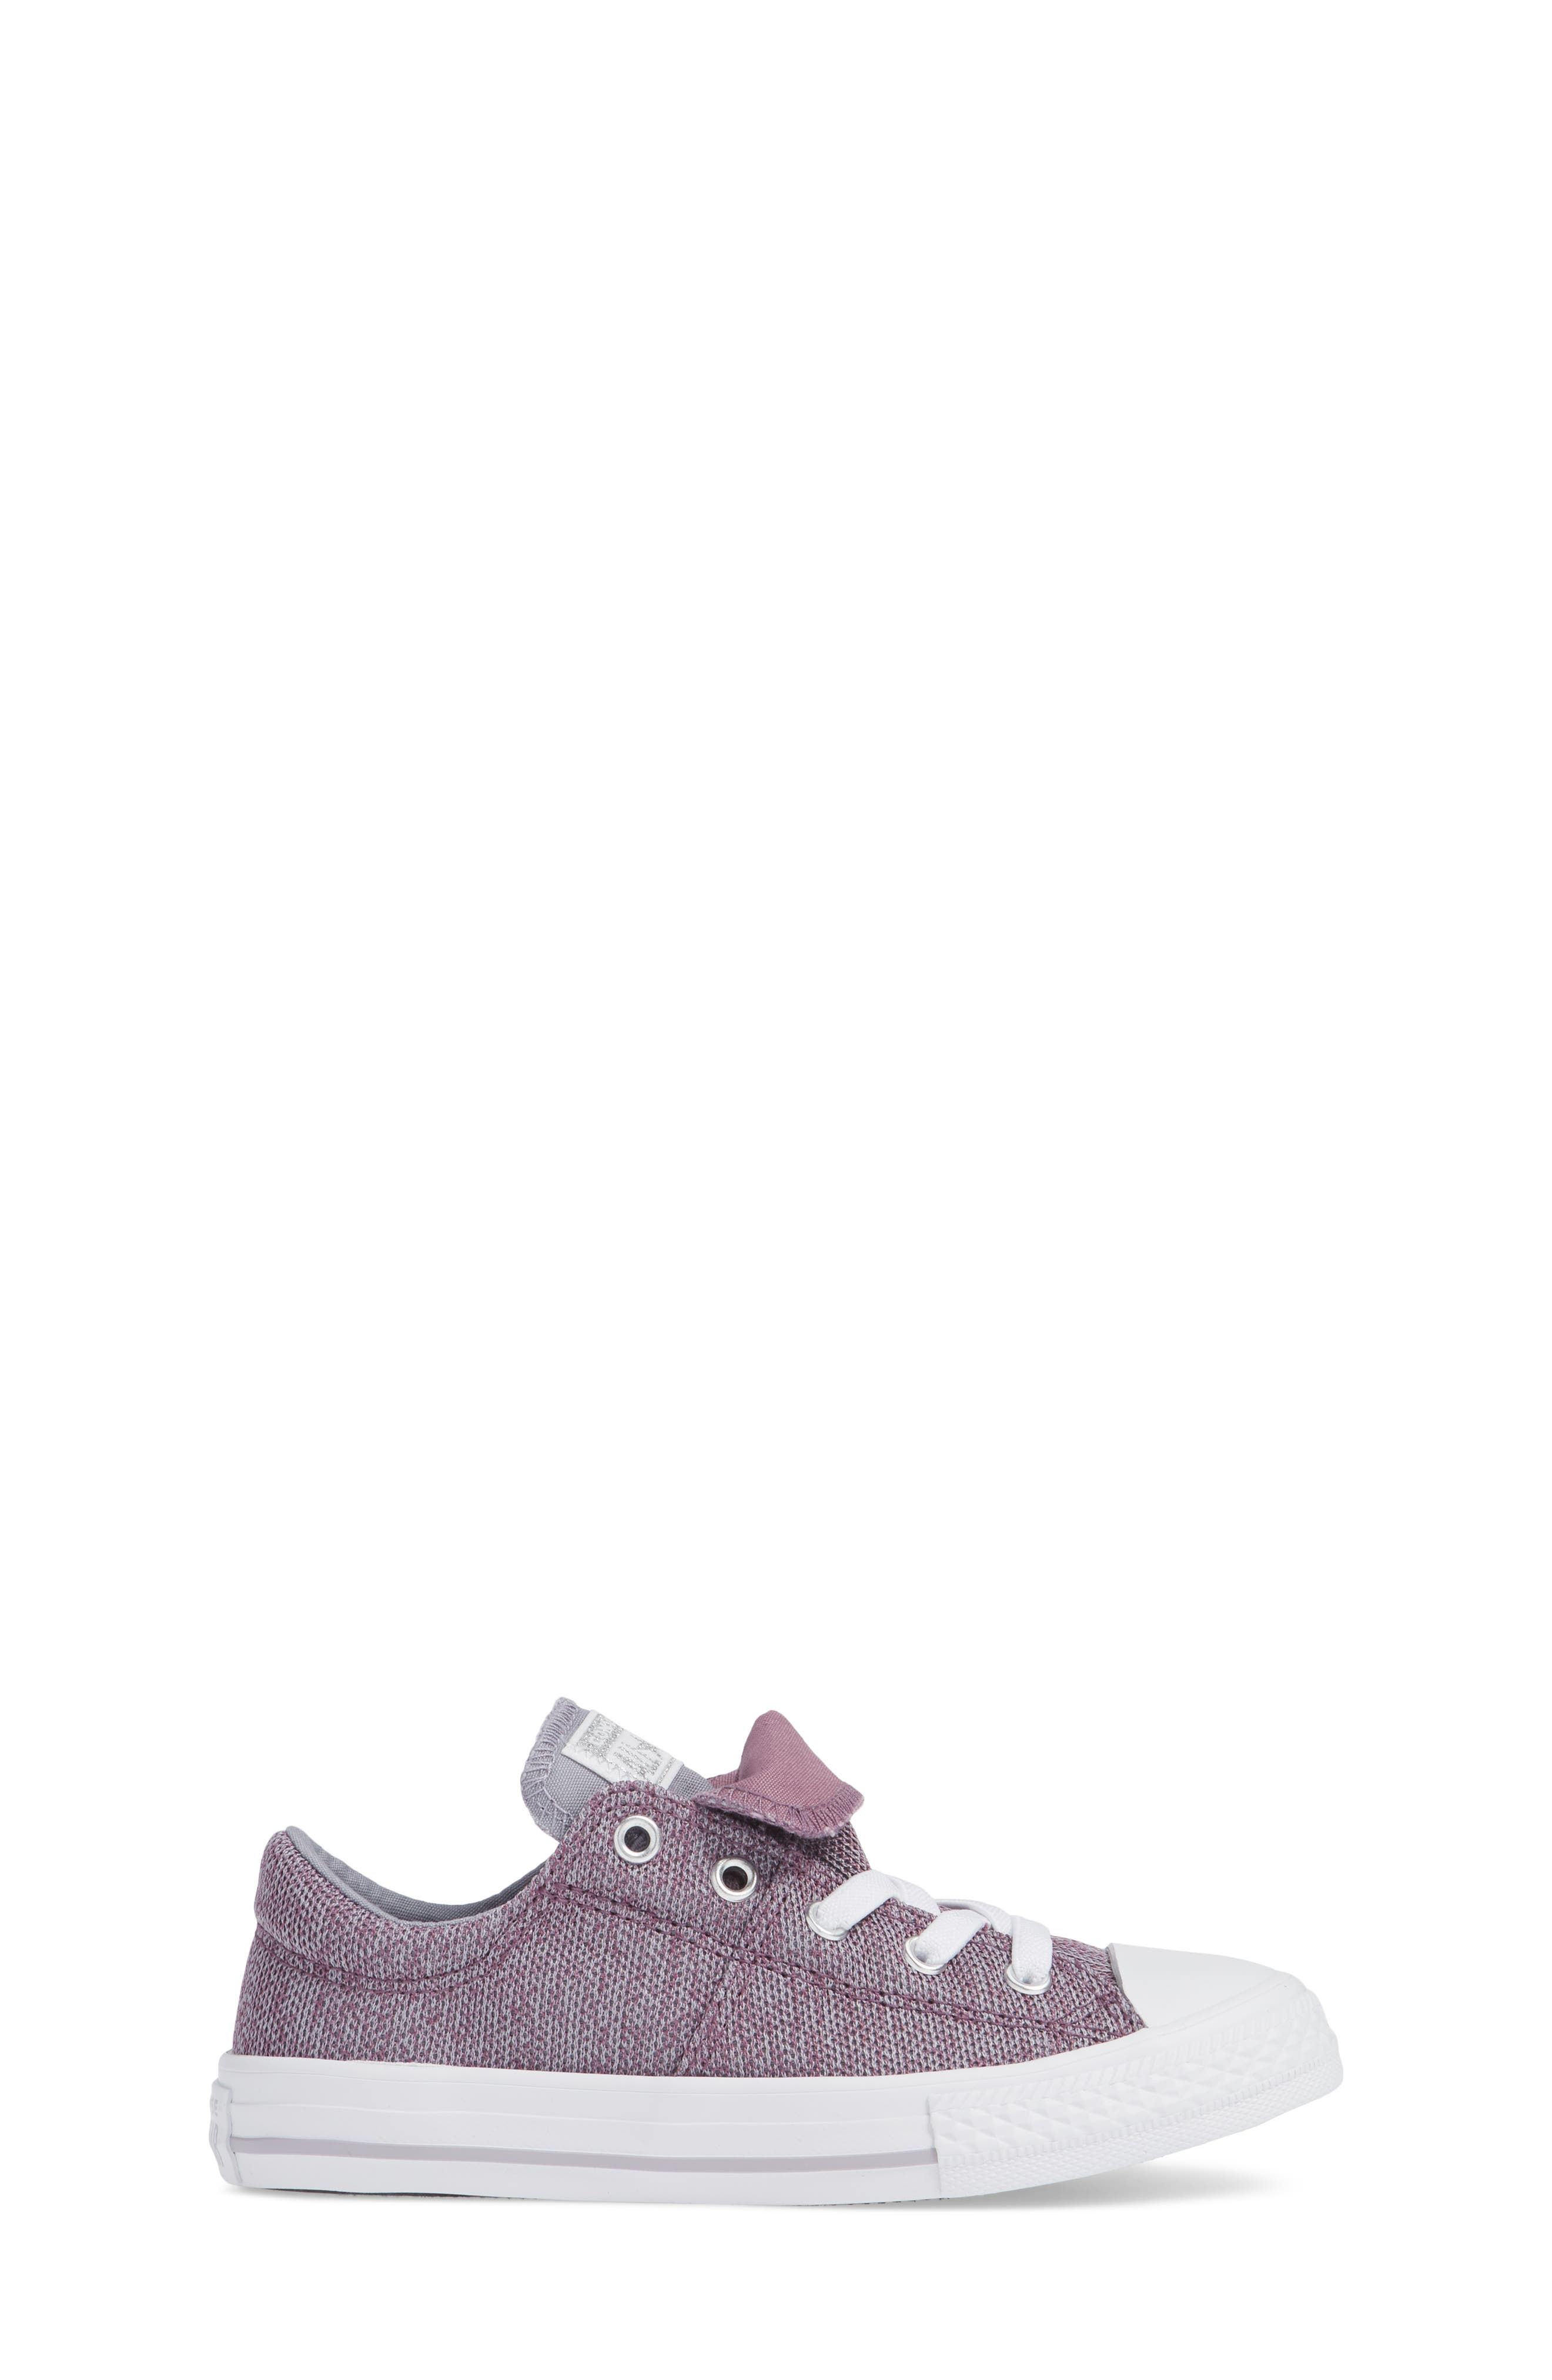 ,                             Chuck Taylor<sup>®</sup> All Star<sup>®</sup> Maddie Double Tongue Sneaker,                             Alternate thumbnail 51, color,                             500